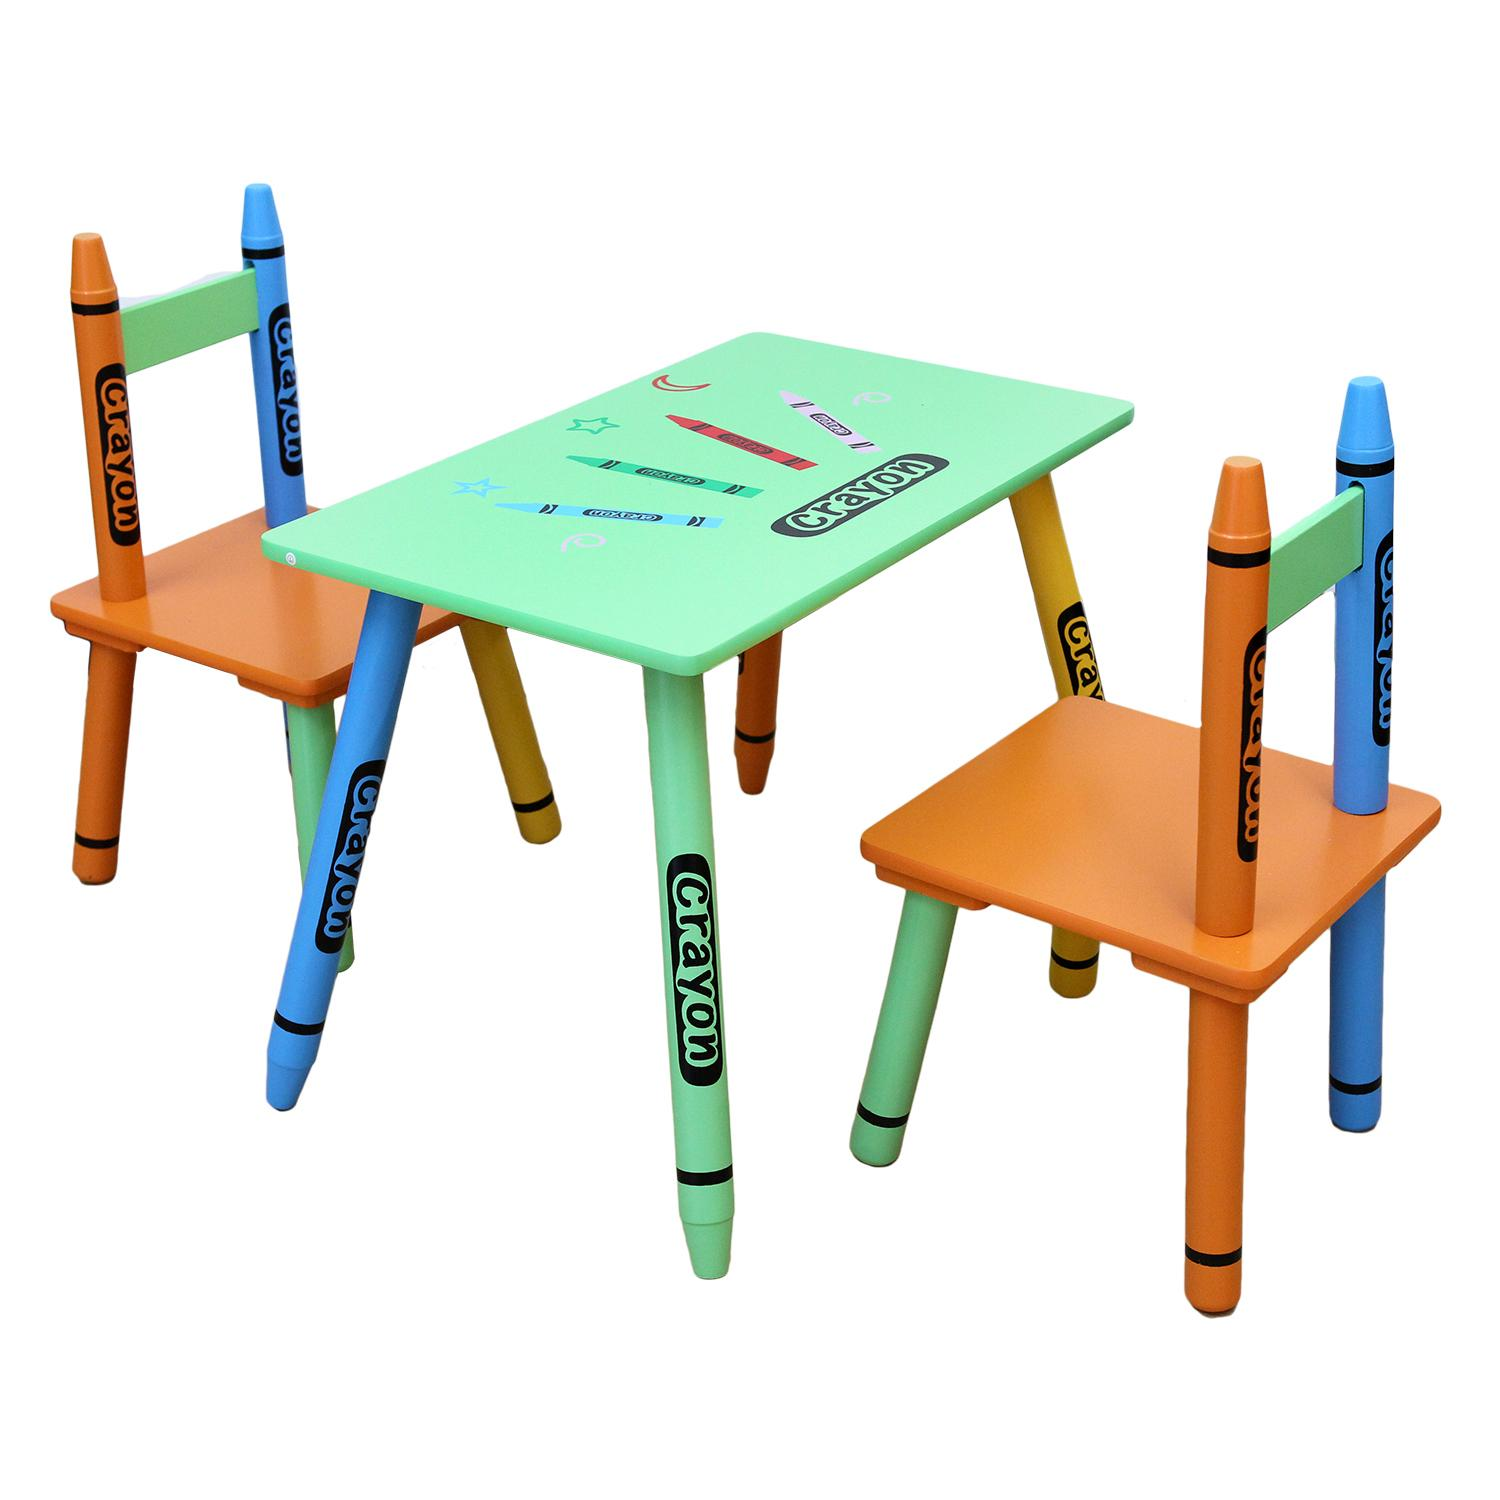 kiddi style childrens wooden table and chair set green. Black Bedroom Furniture Sets. Home Design Ideas